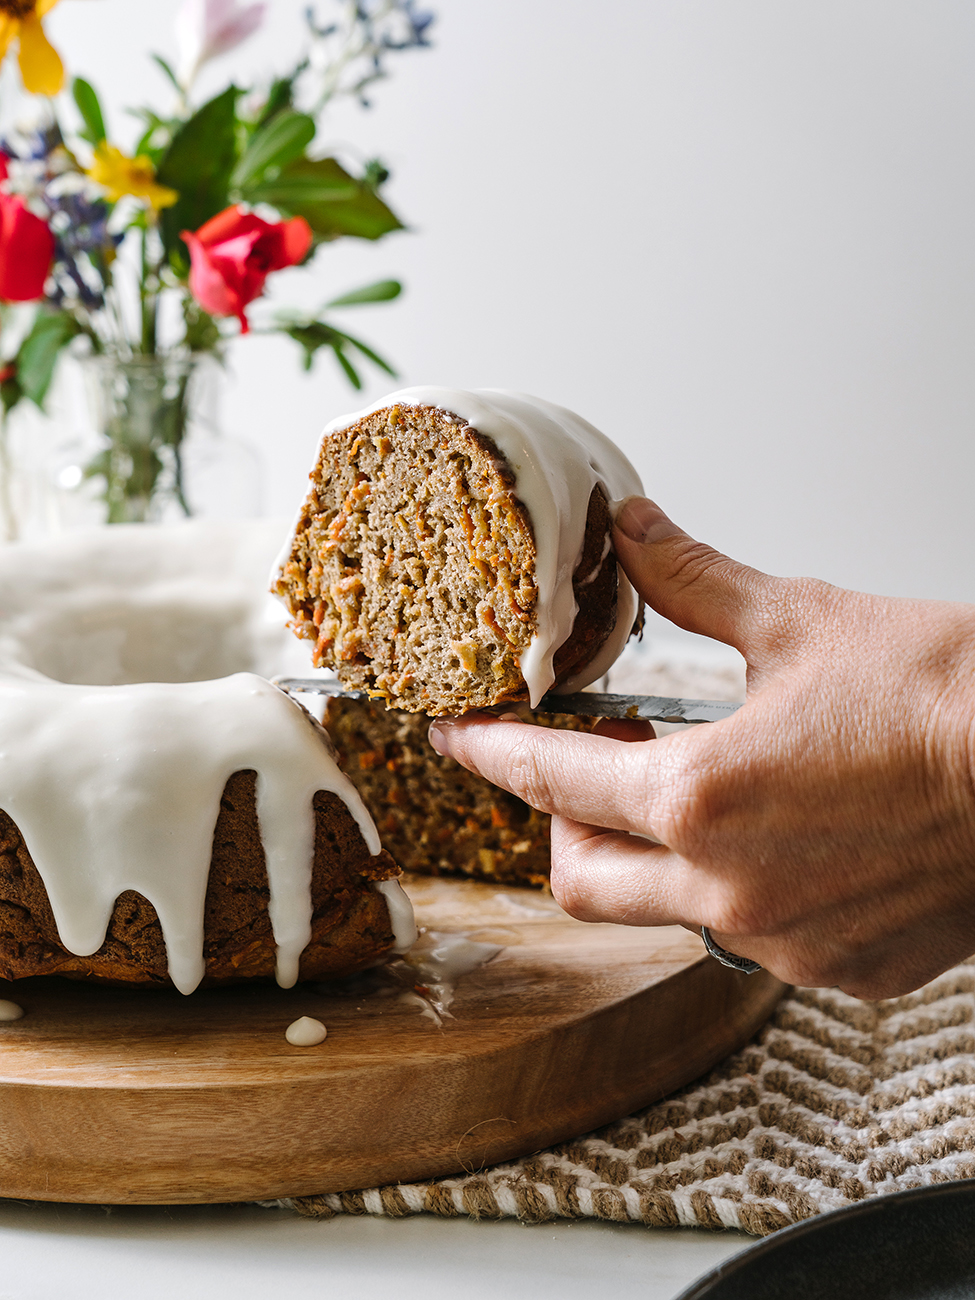 A slice of Carrot Bundt Cake being picked up